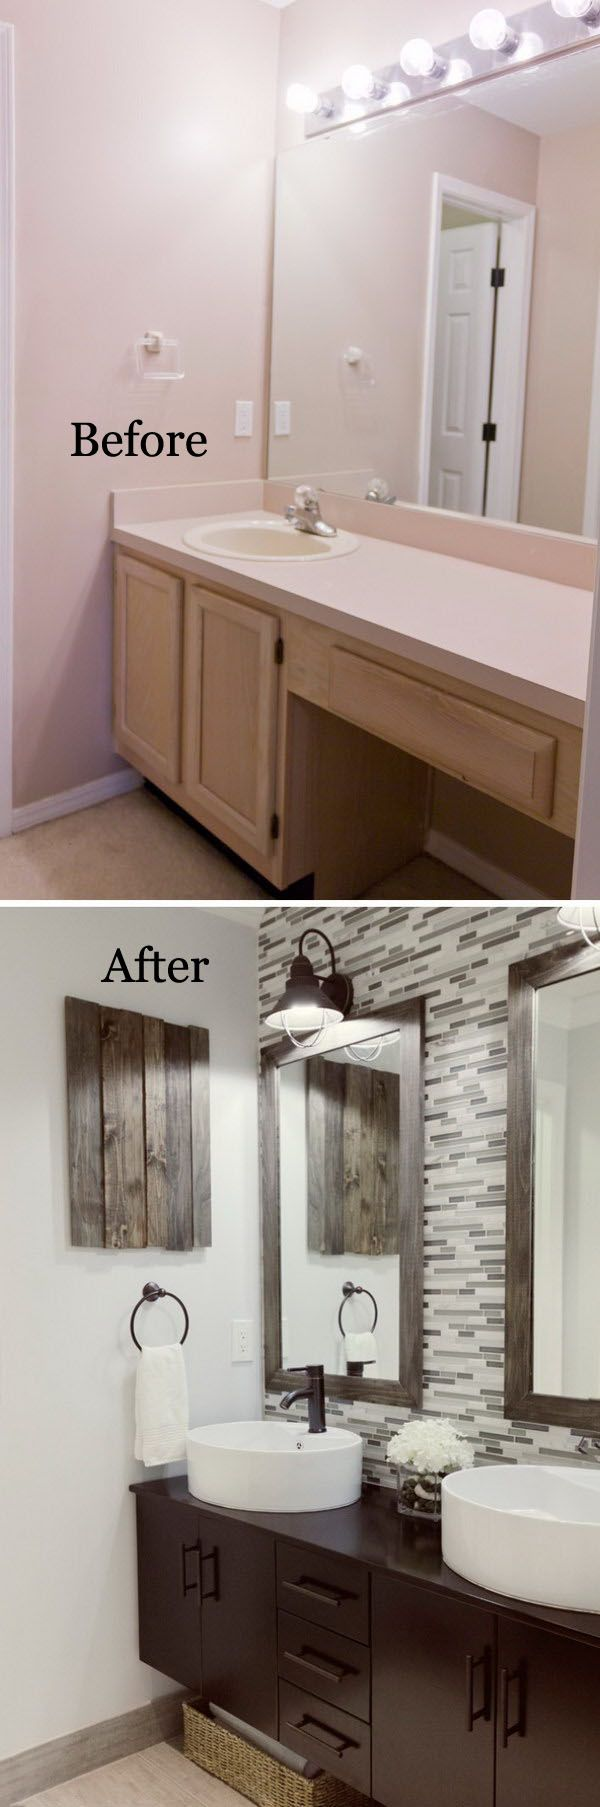 Bathroom Remodeling Ideas Pictures top 25+ best bathroom renovations ideas on pinterest | bathroom